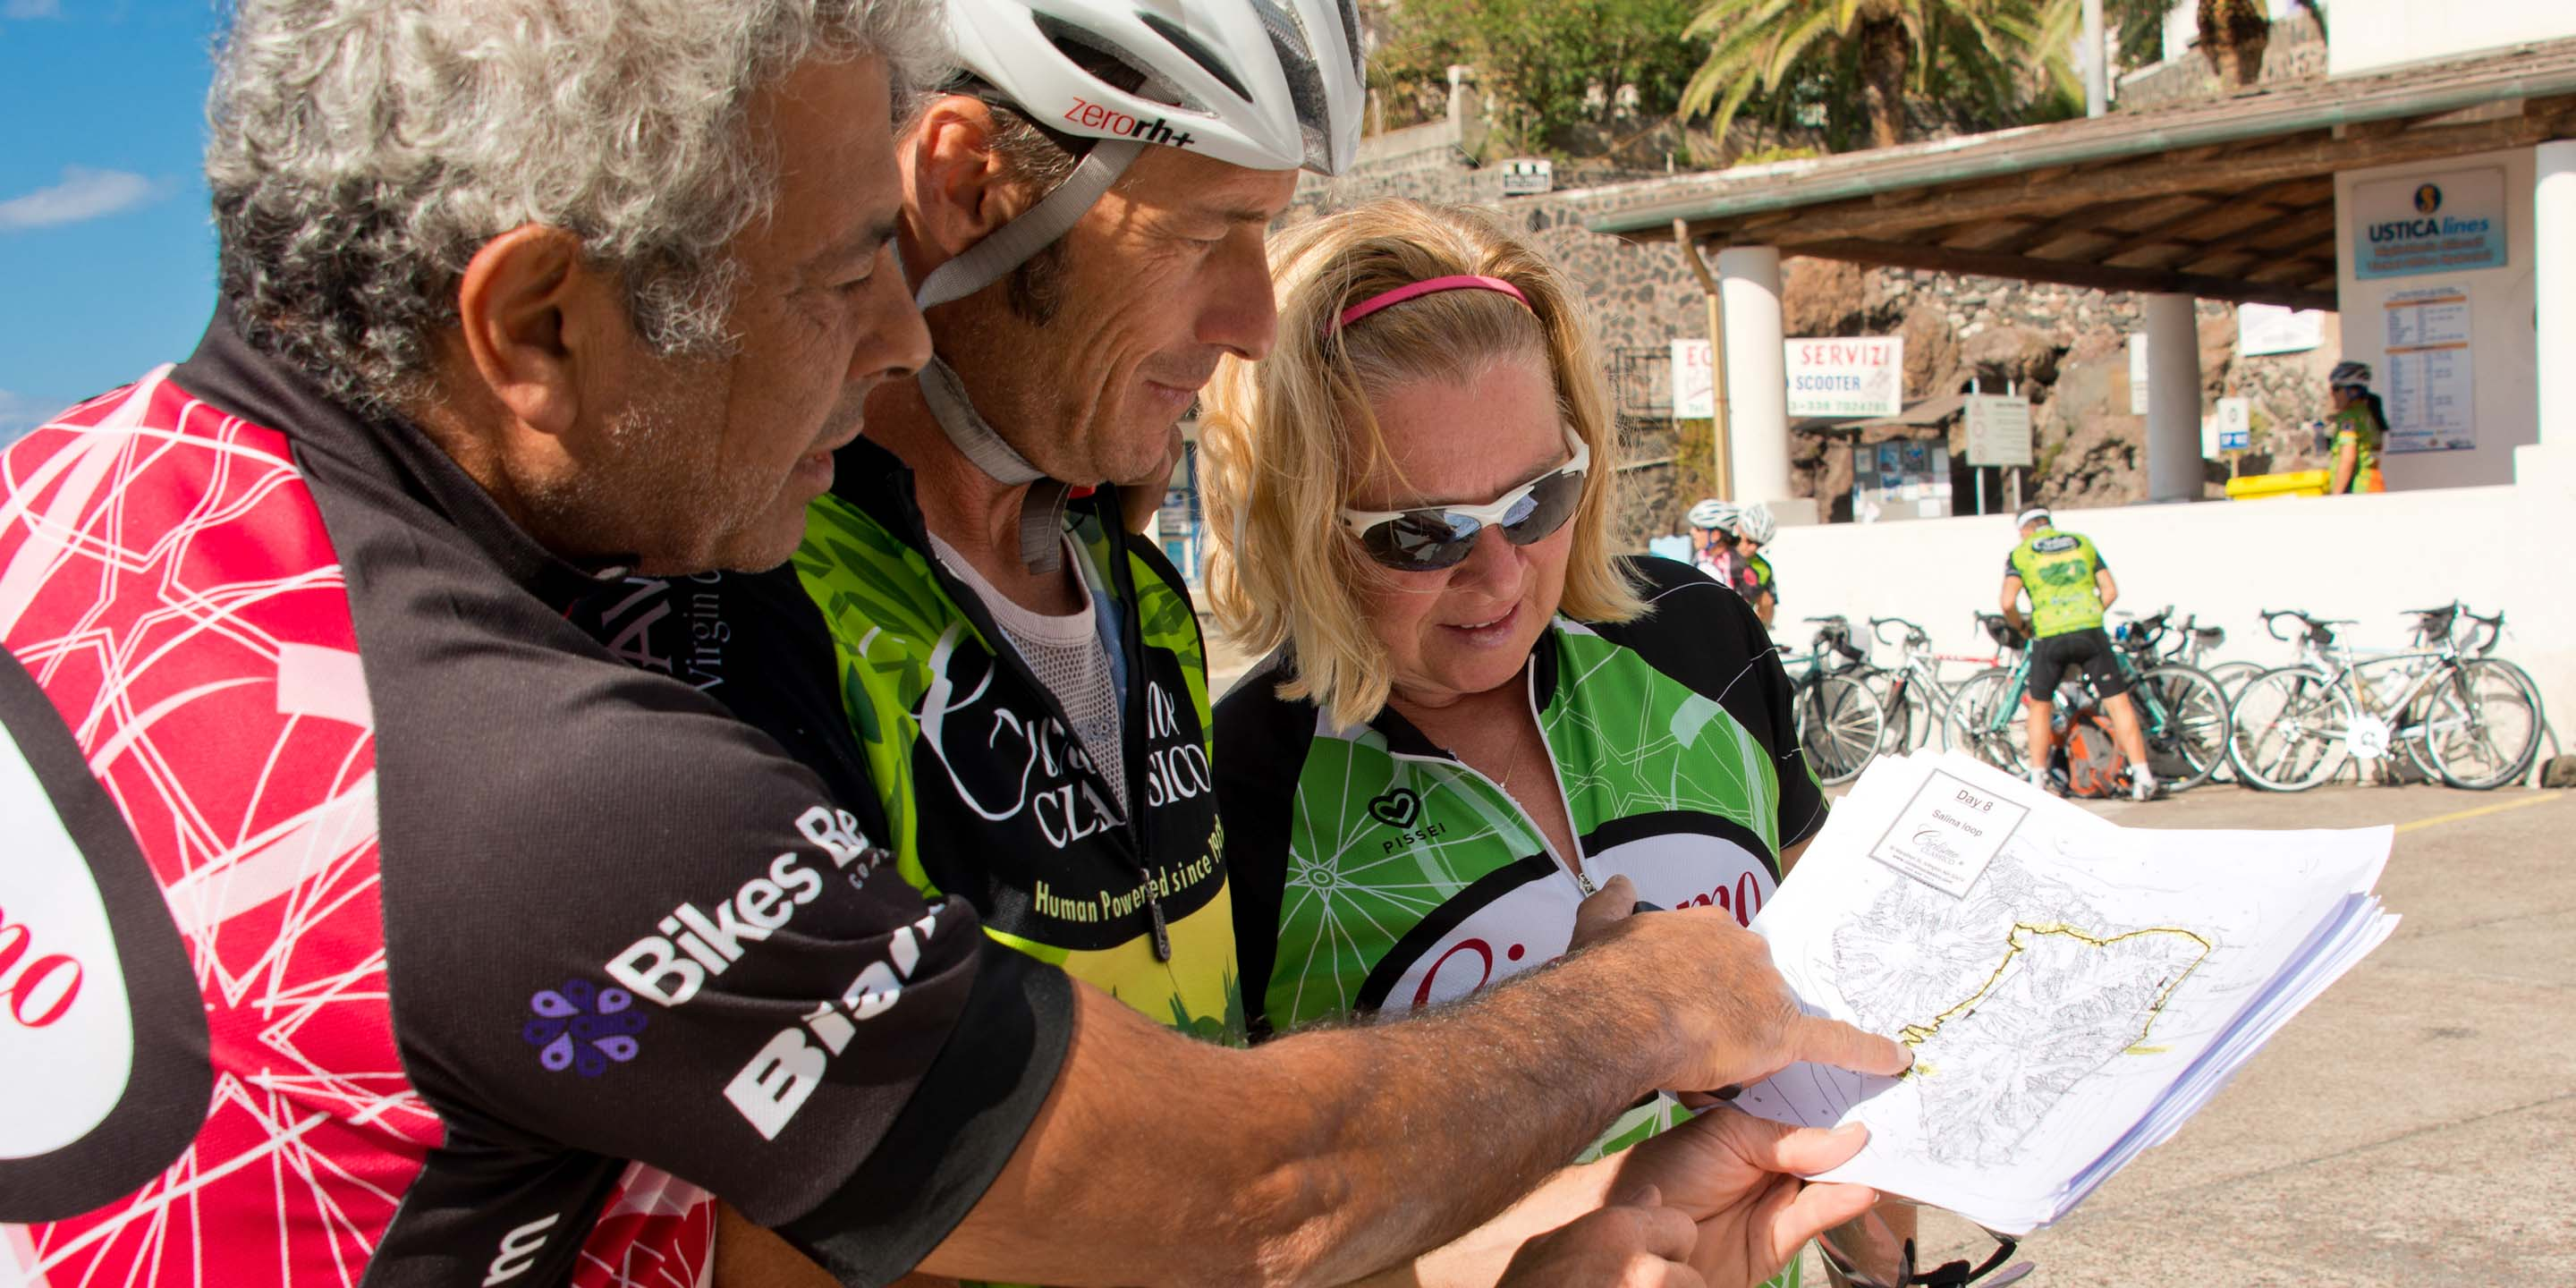 Bike tour guide planning route on map